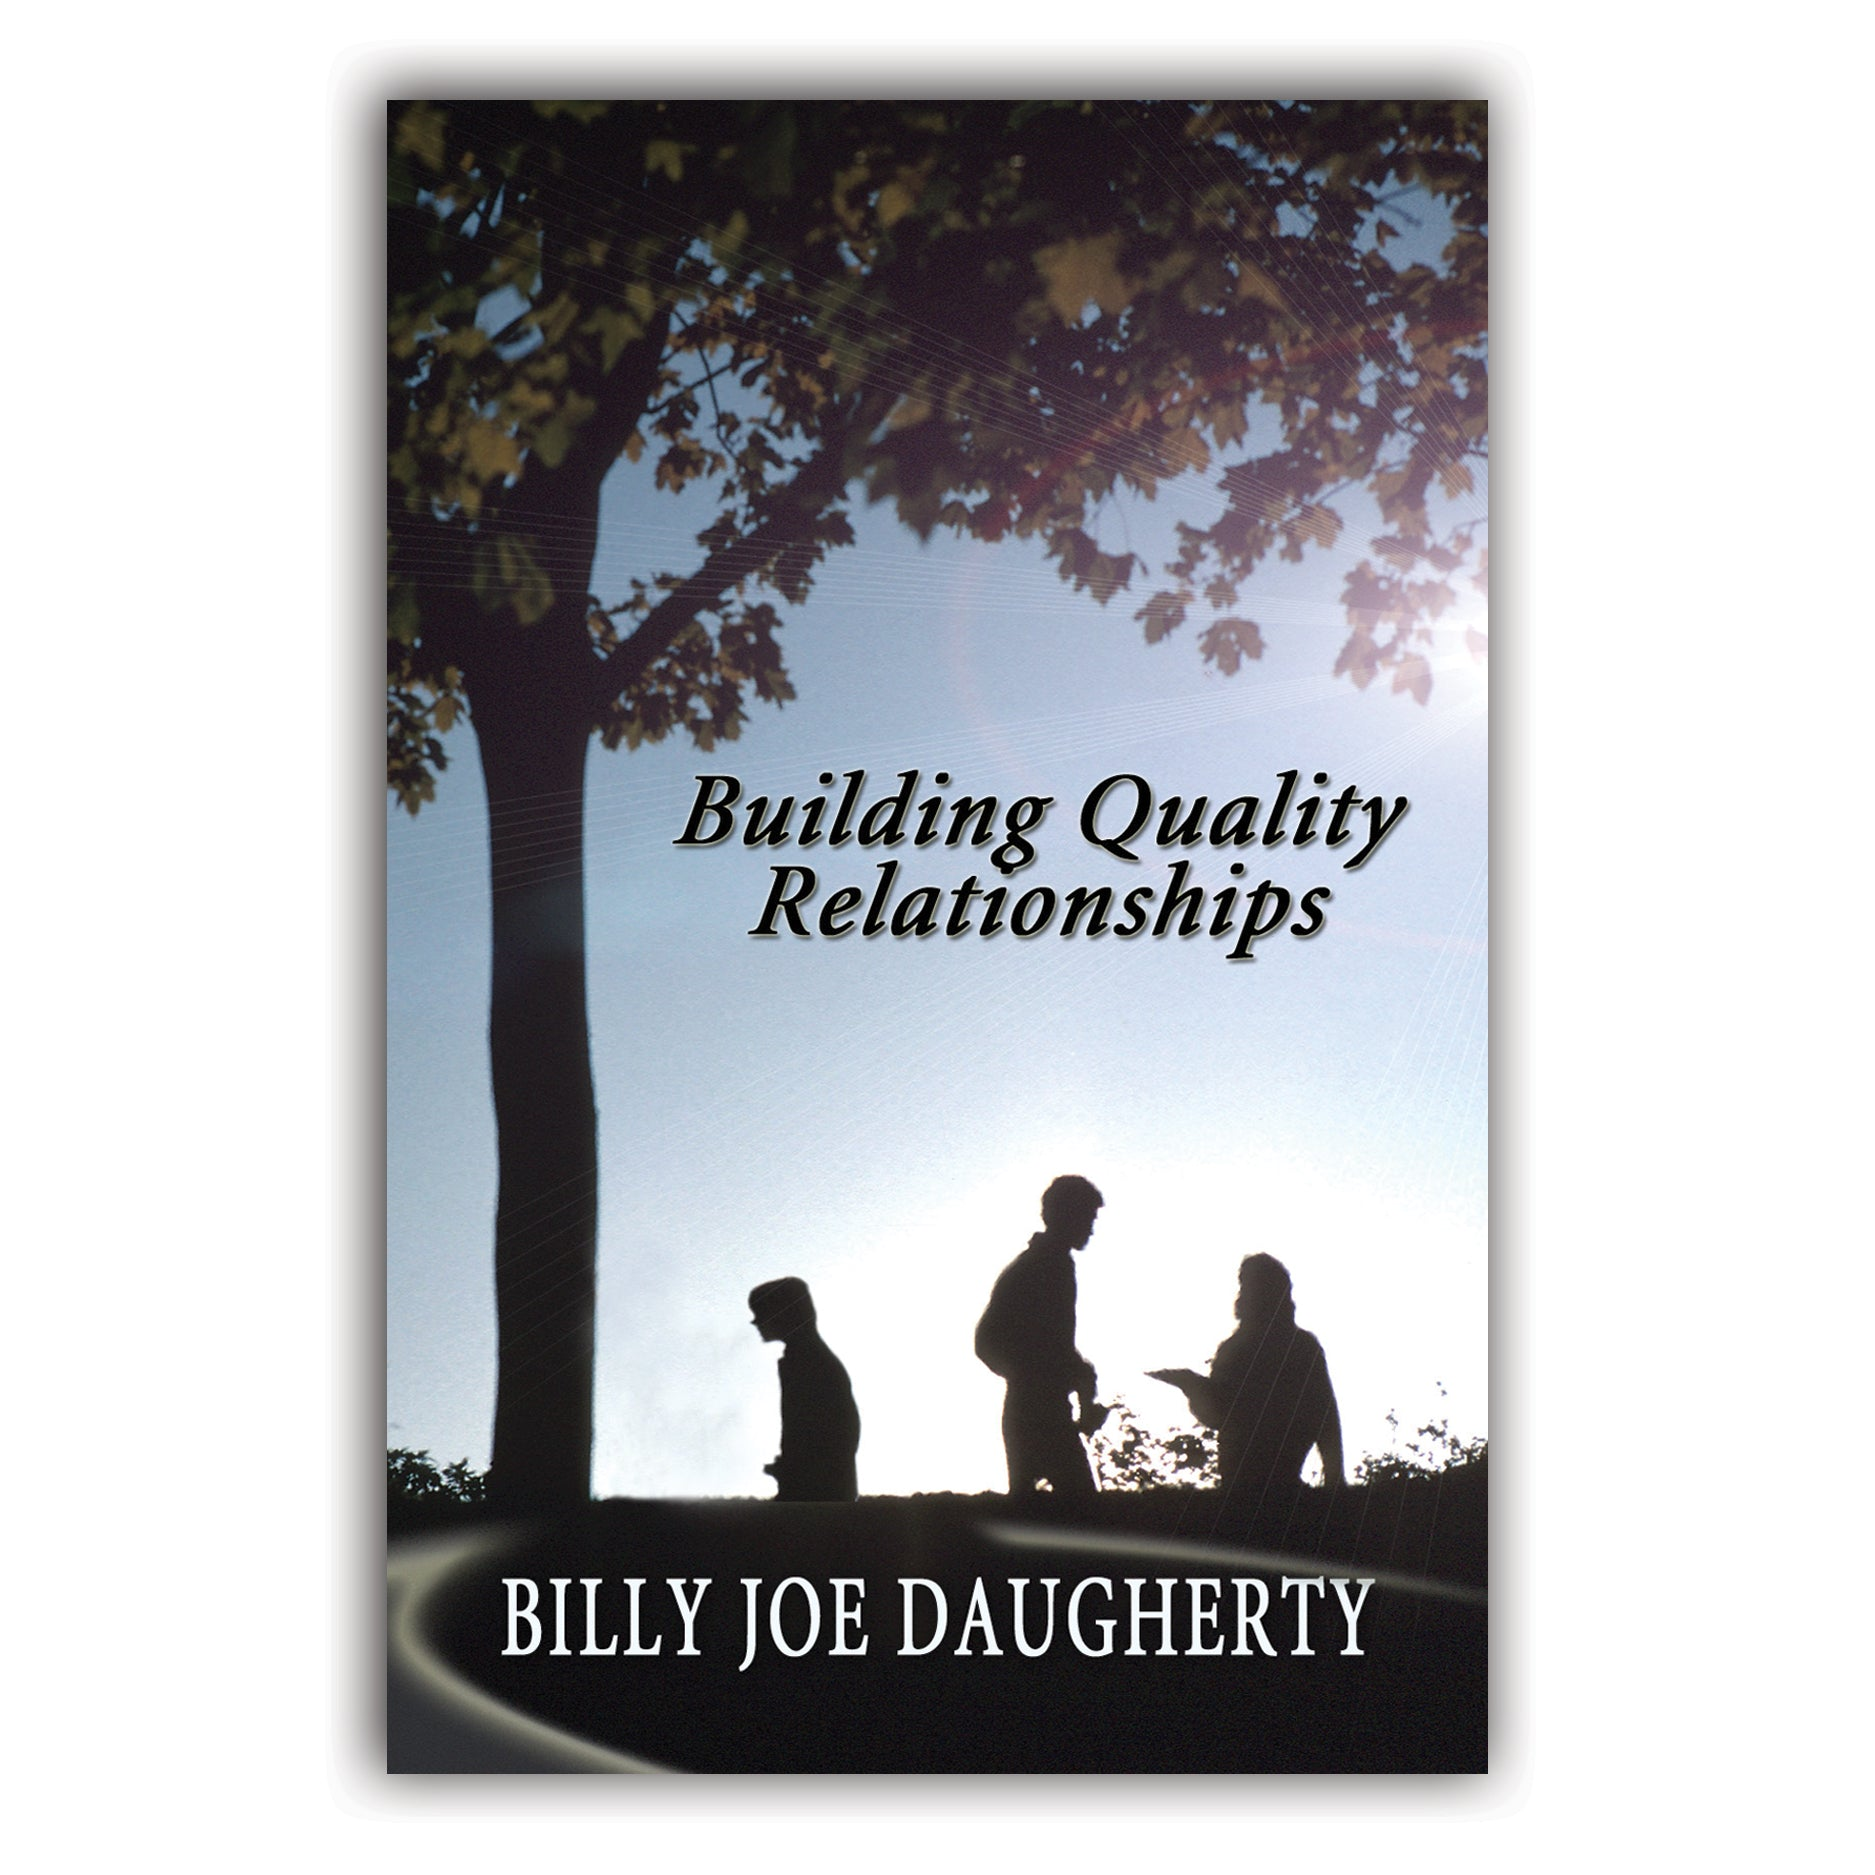 Building Quality Relationships